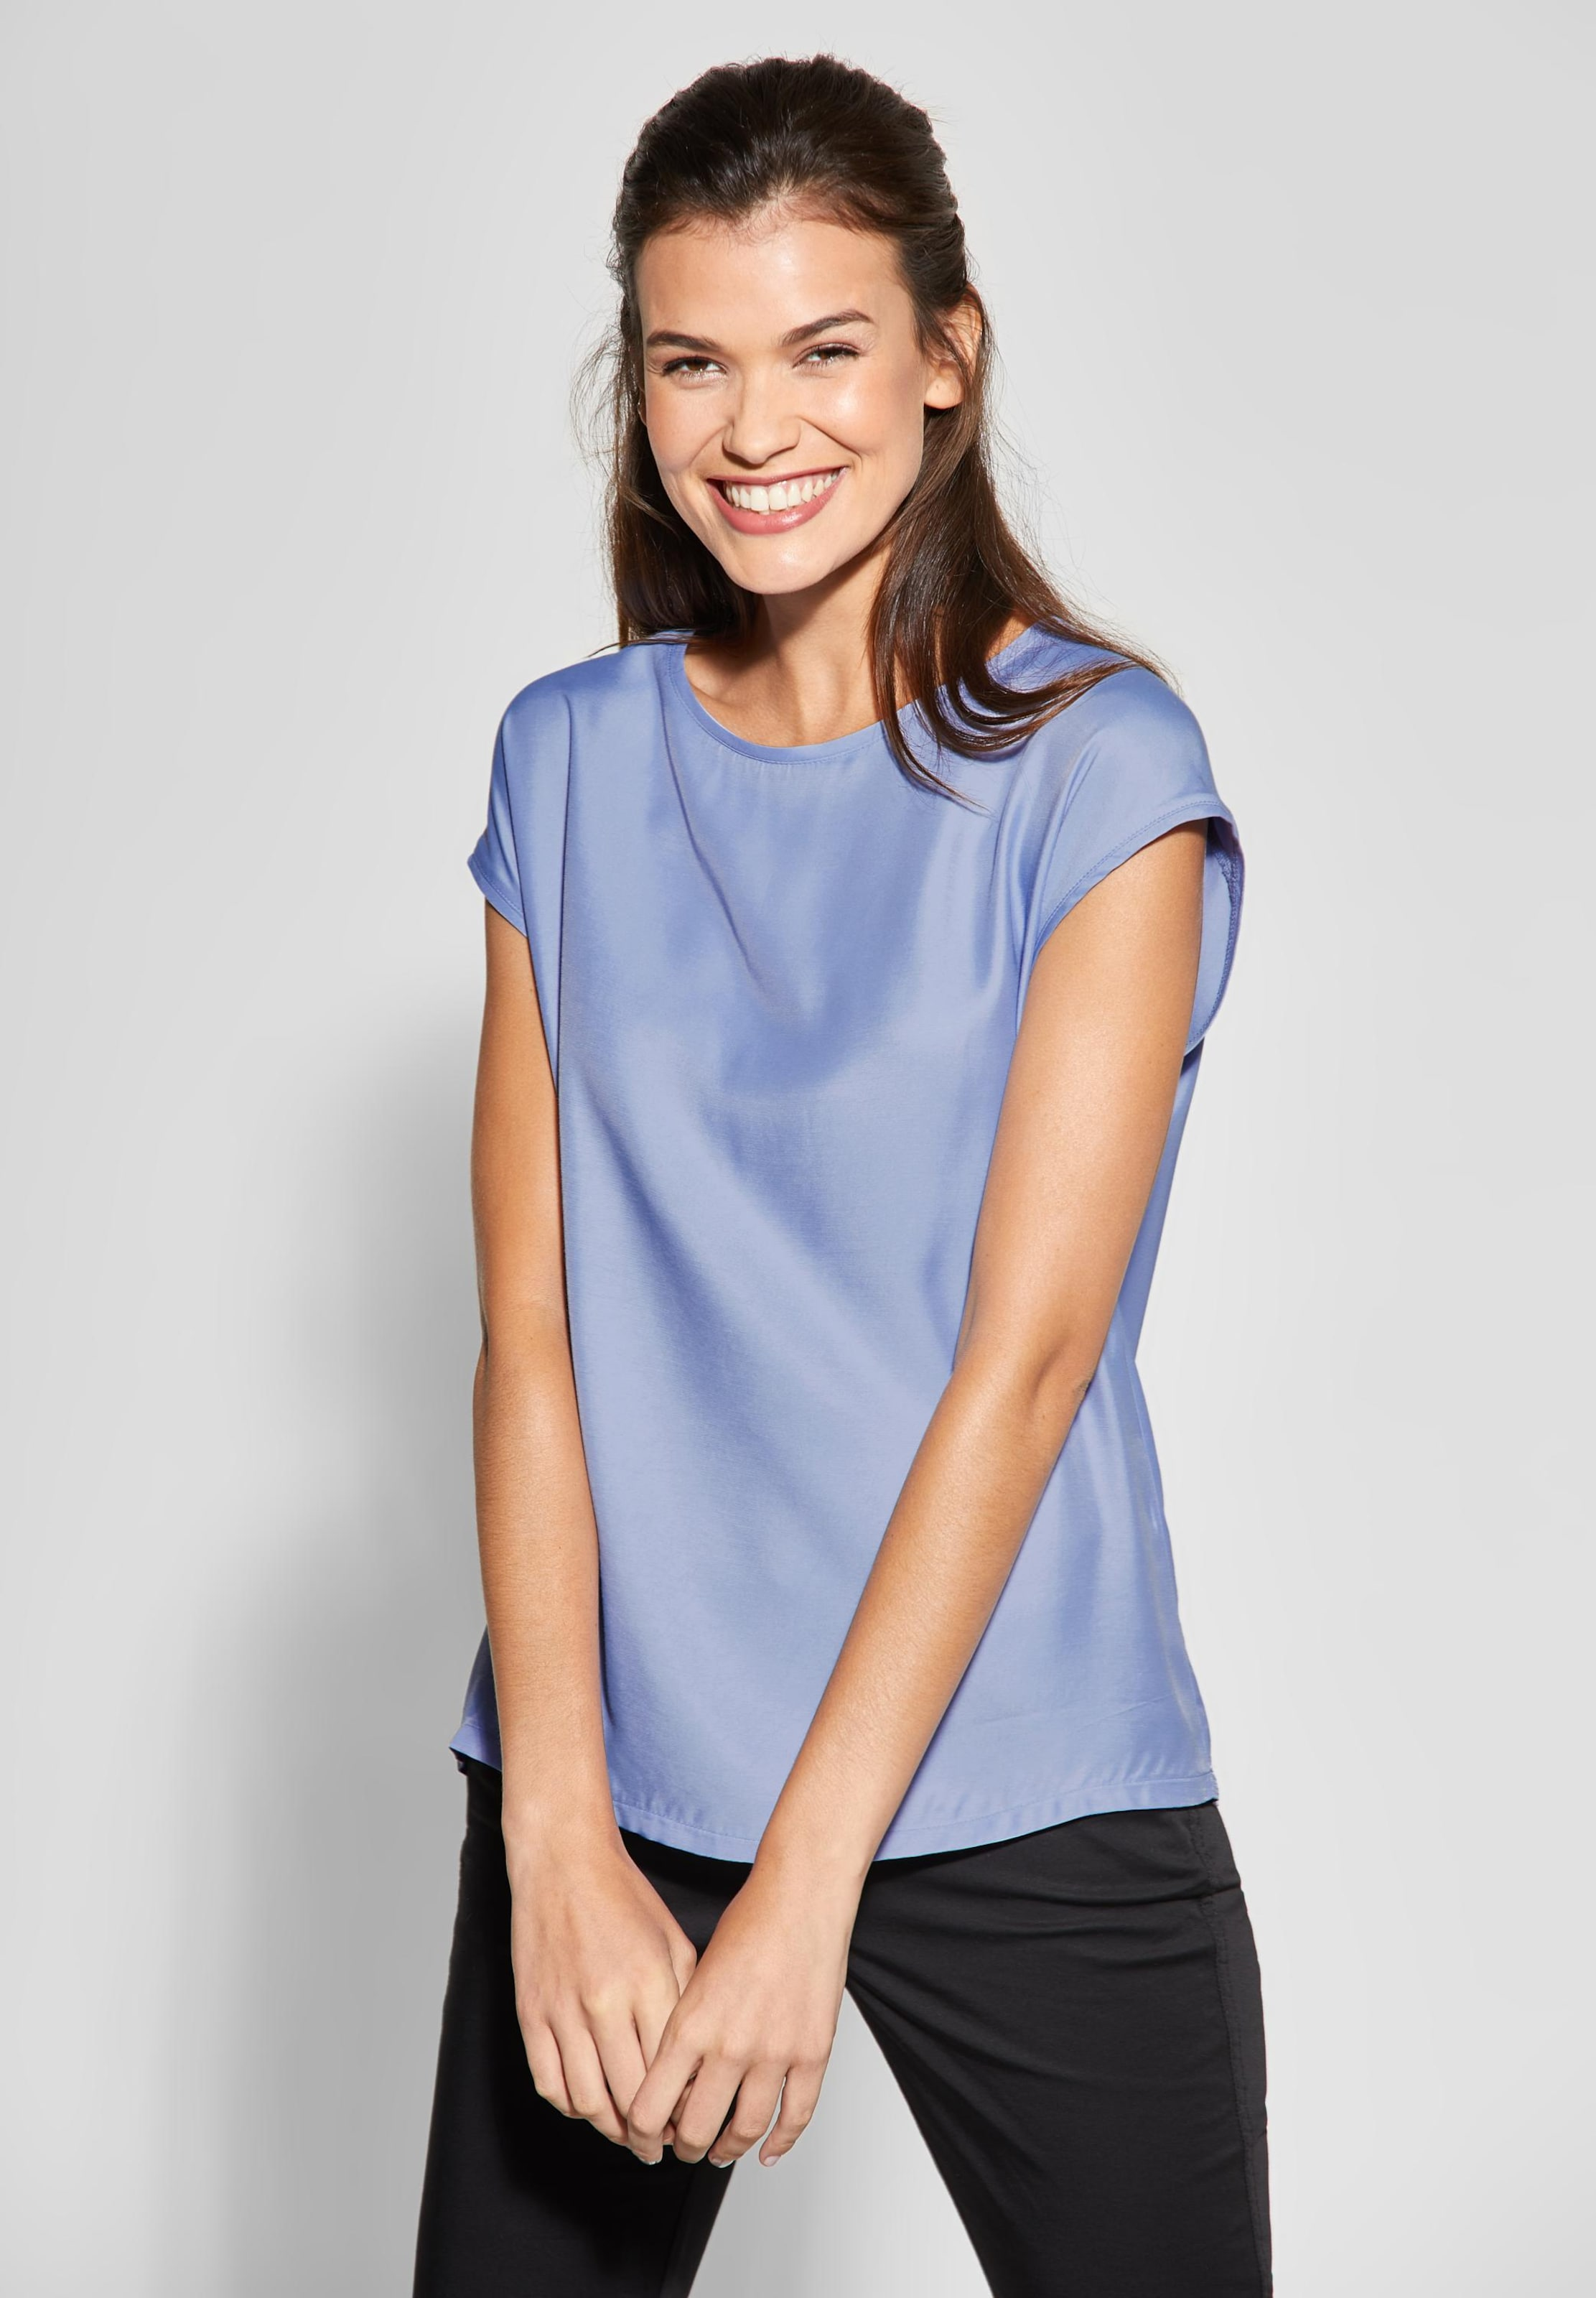 In Street Basic style Shirtbluse One Himmelblau Im 2IE9DH